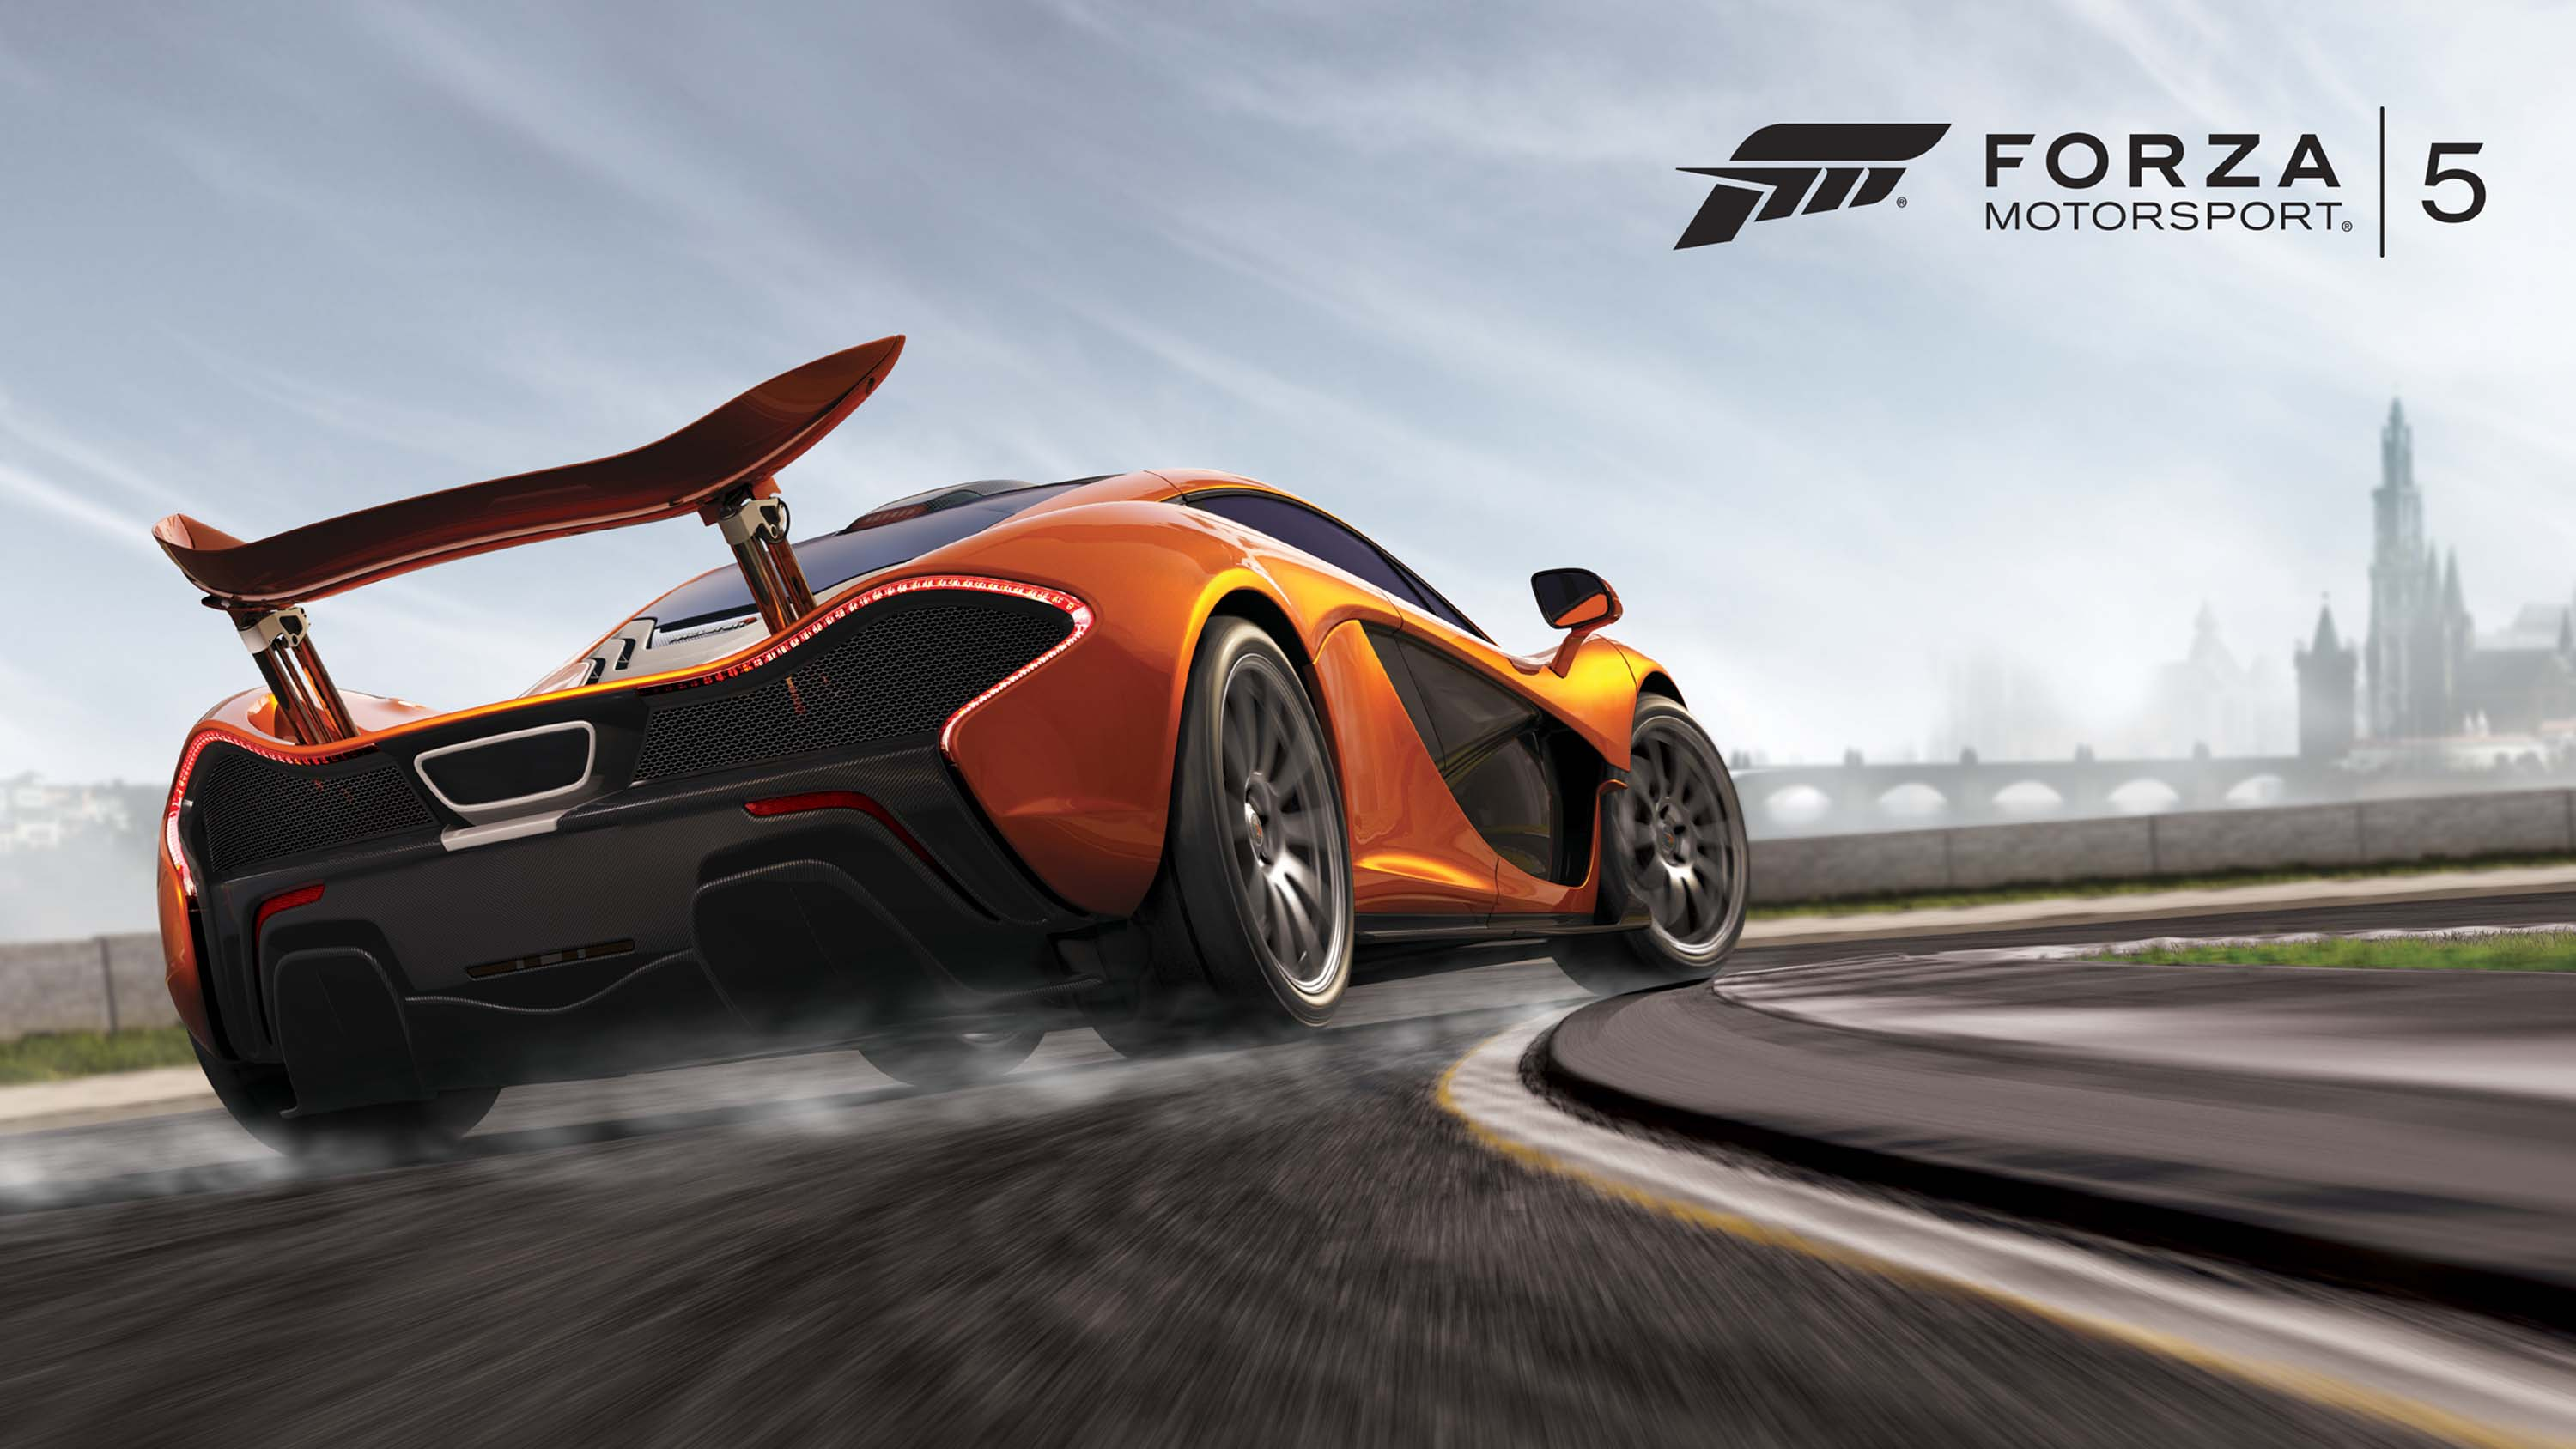 Forza Motorsport 5 announced as Xbox One launch title - first screenshots and reveal video